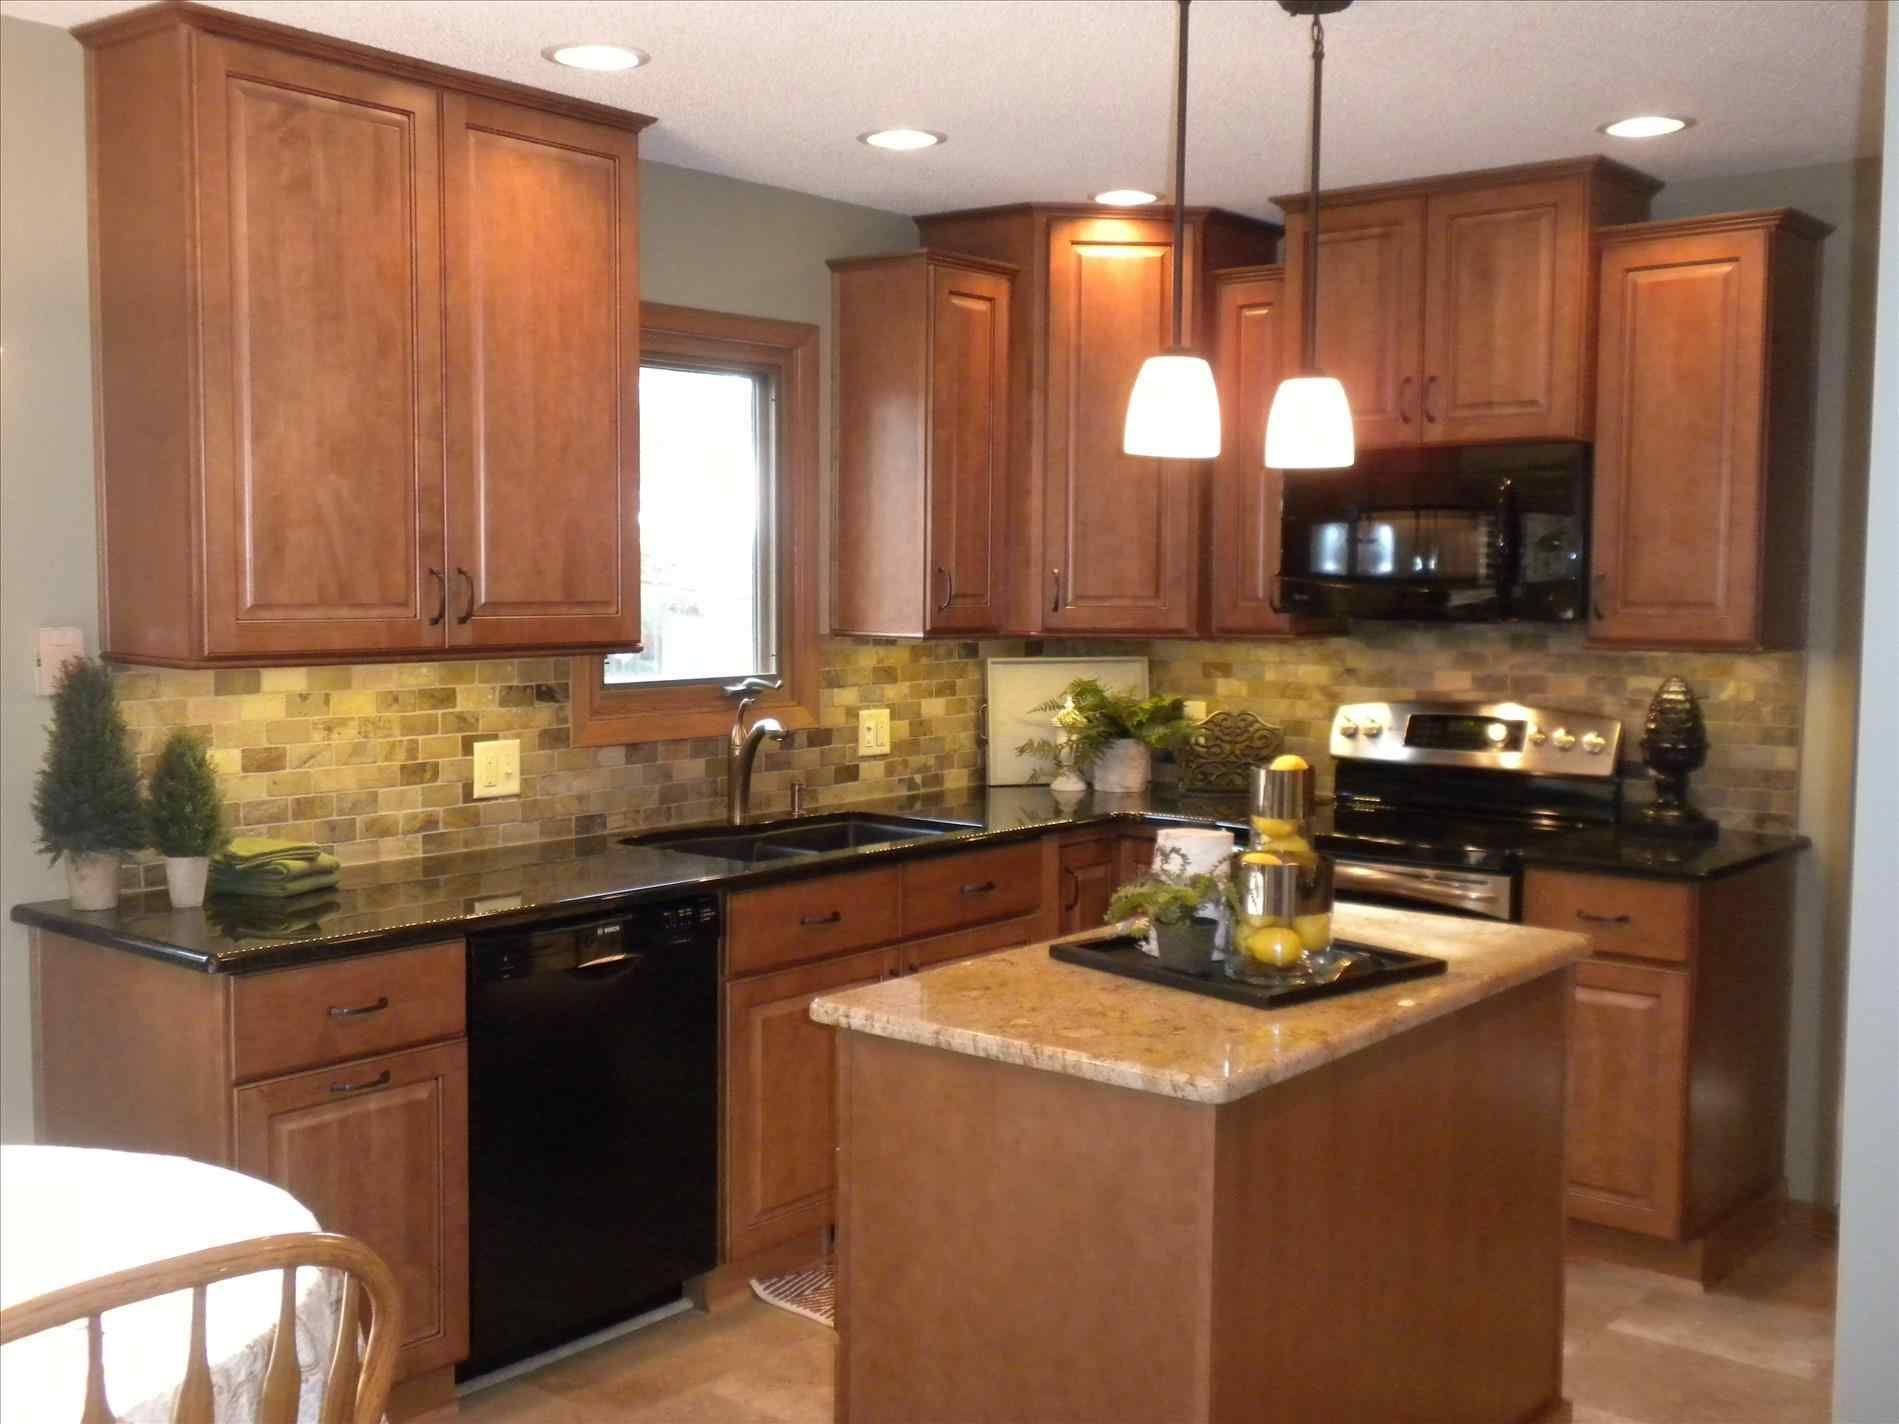 Kitchen Cabinets And Countertops Aid Mixing Bowls Black Stainless Steel Appliances With Oak Colors